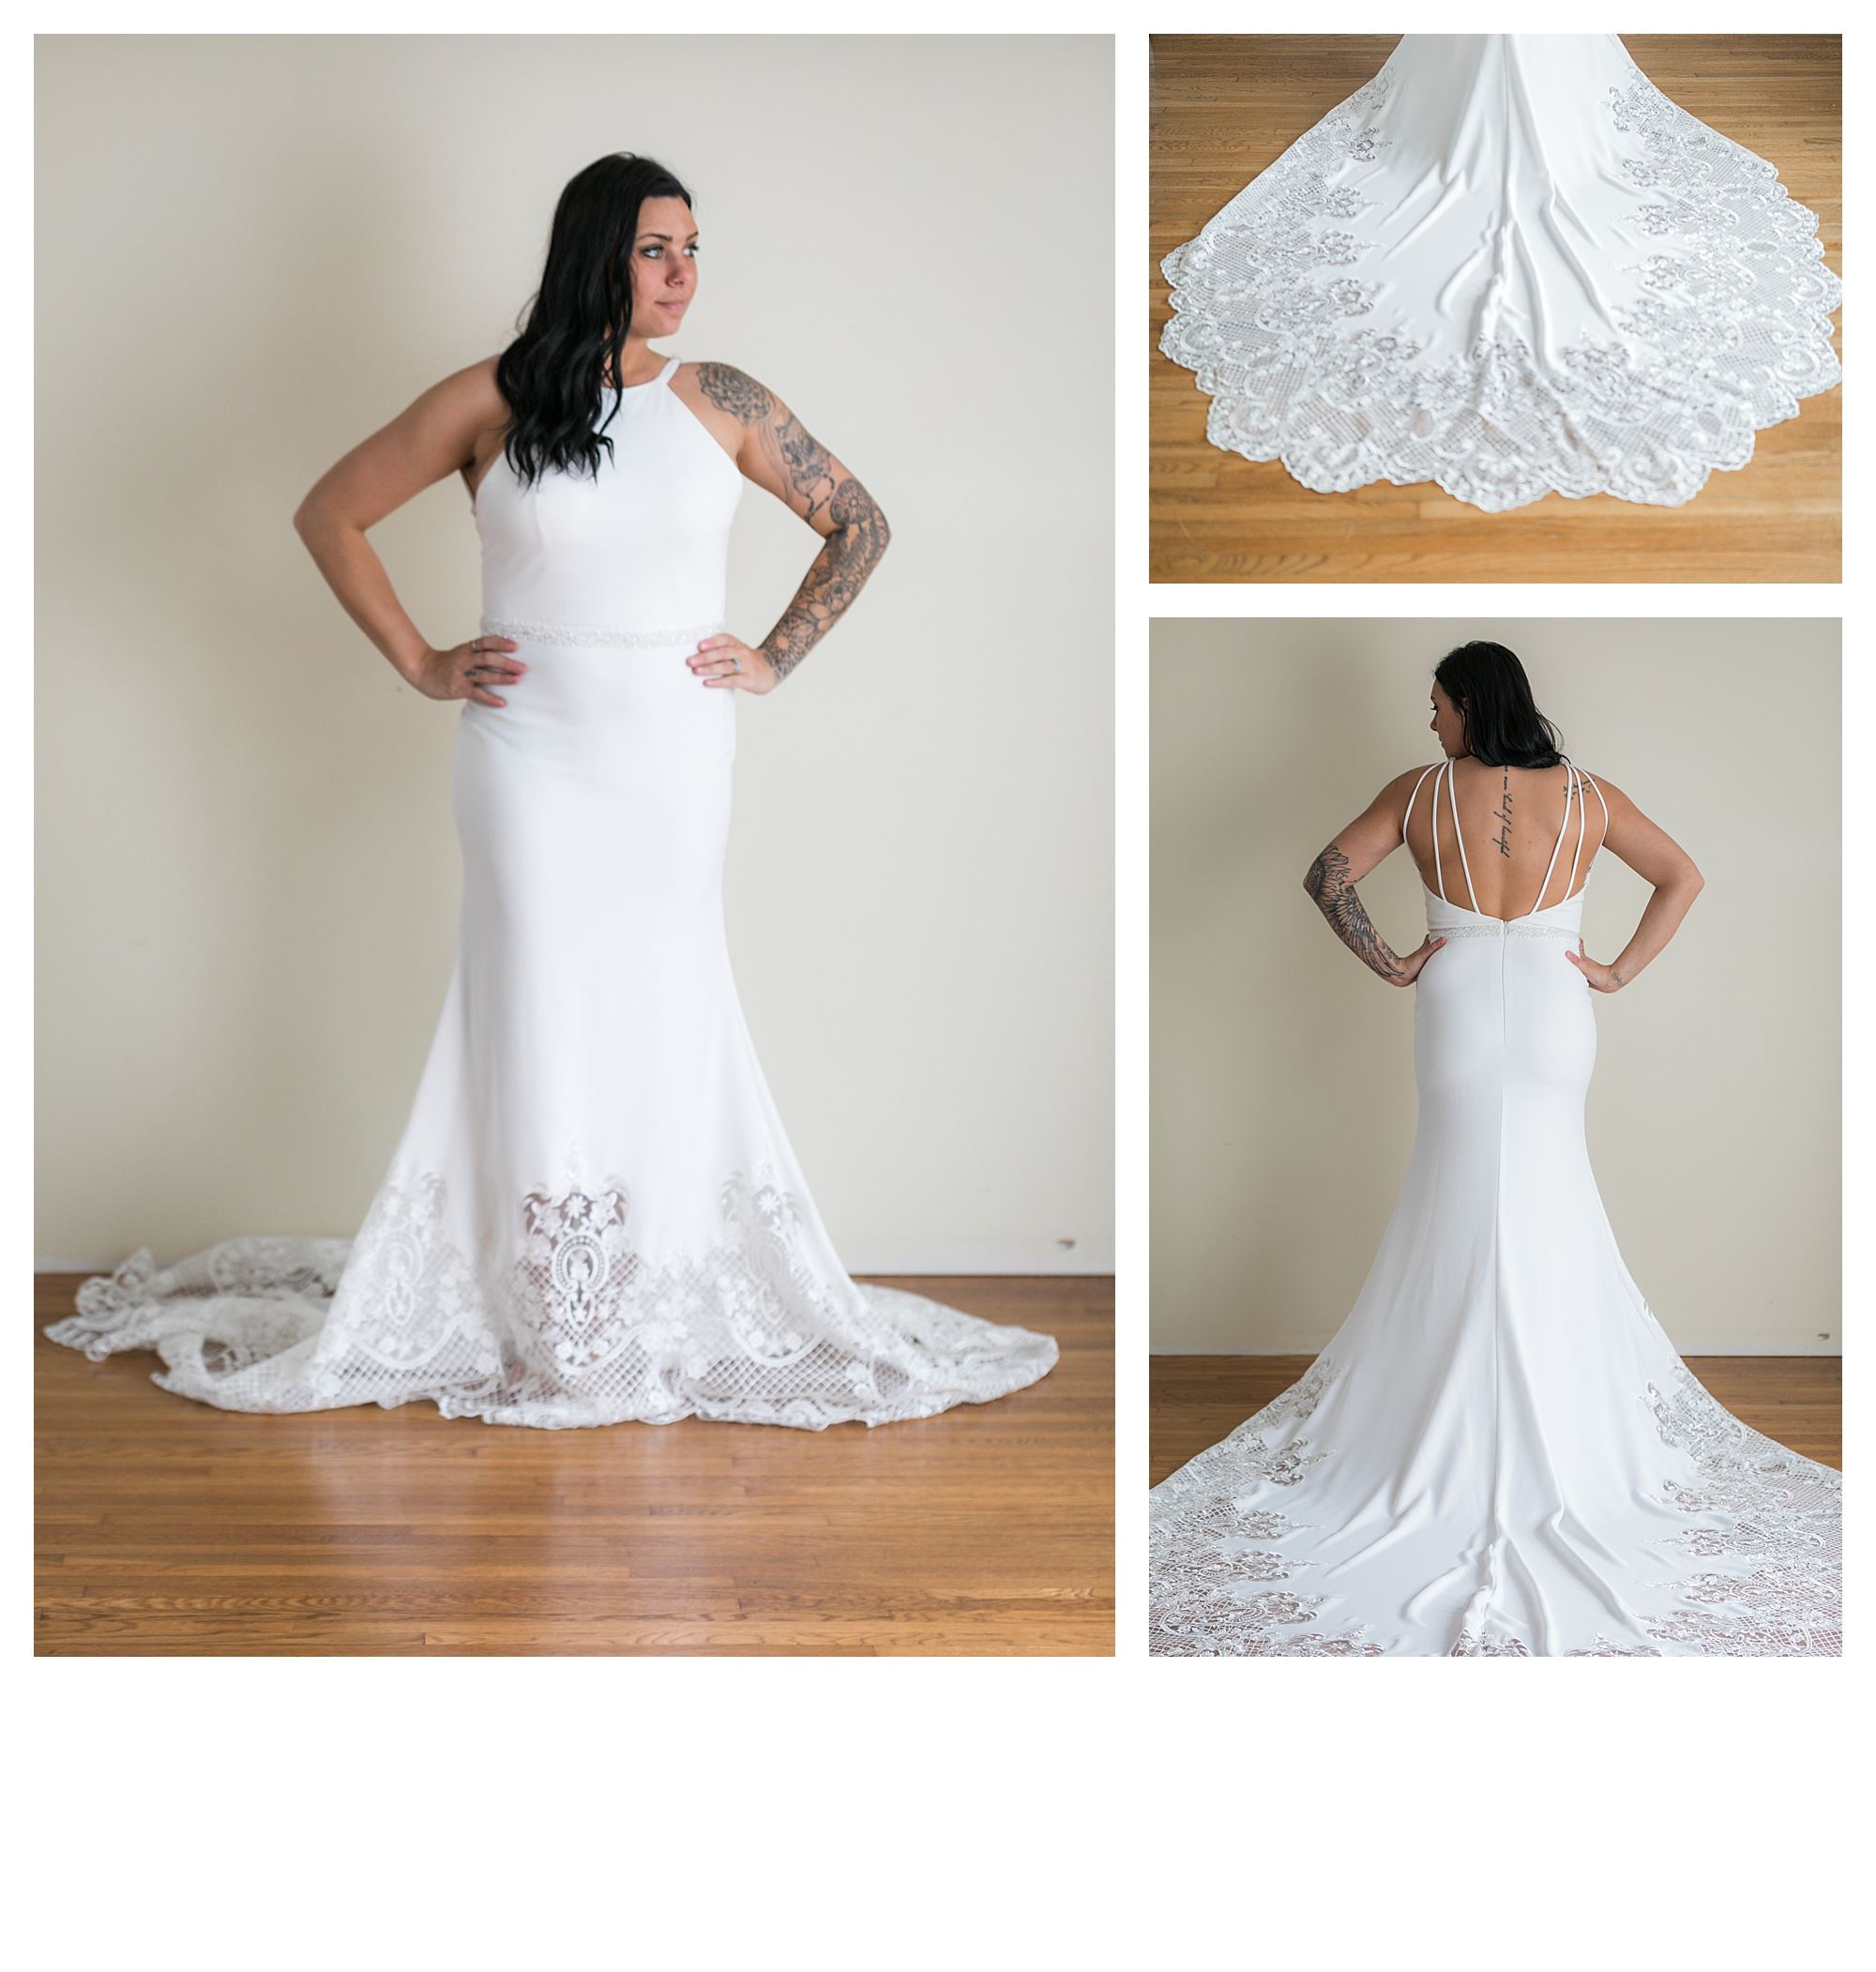 Summer - Size 12 - Ivory - Originally priced $1799 - Sample box price $1199